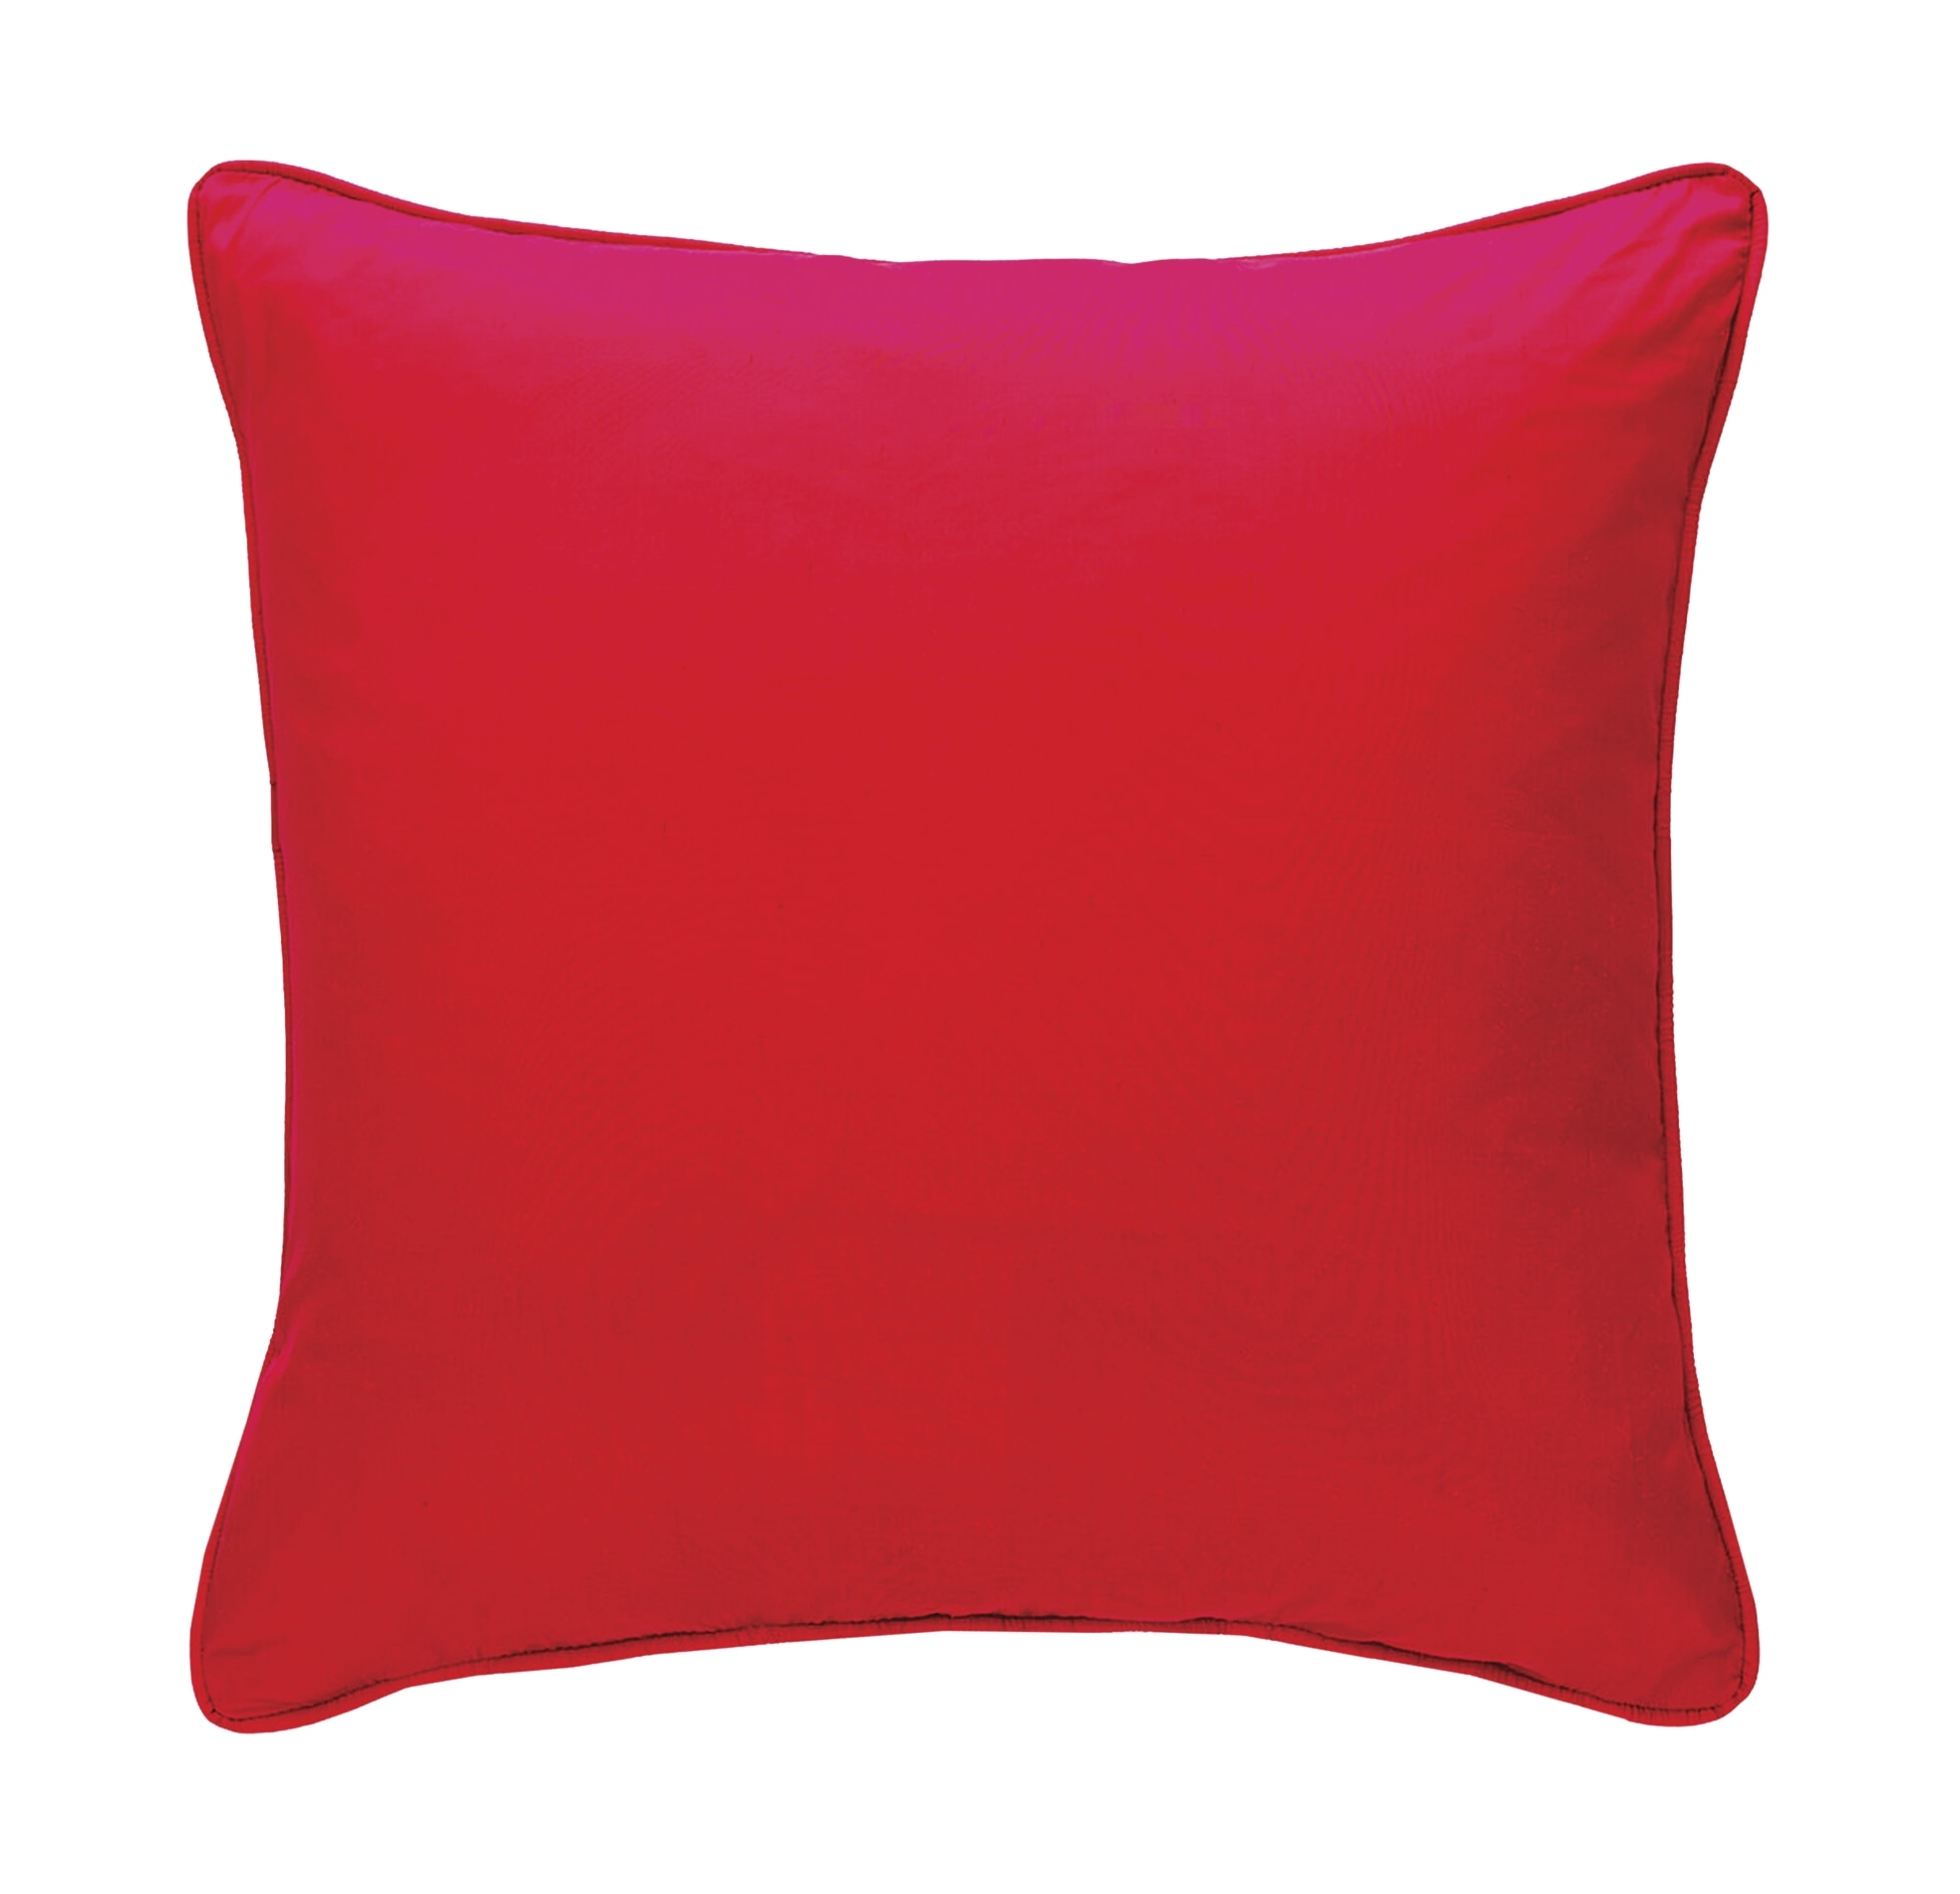 Red_Pillow.jpg